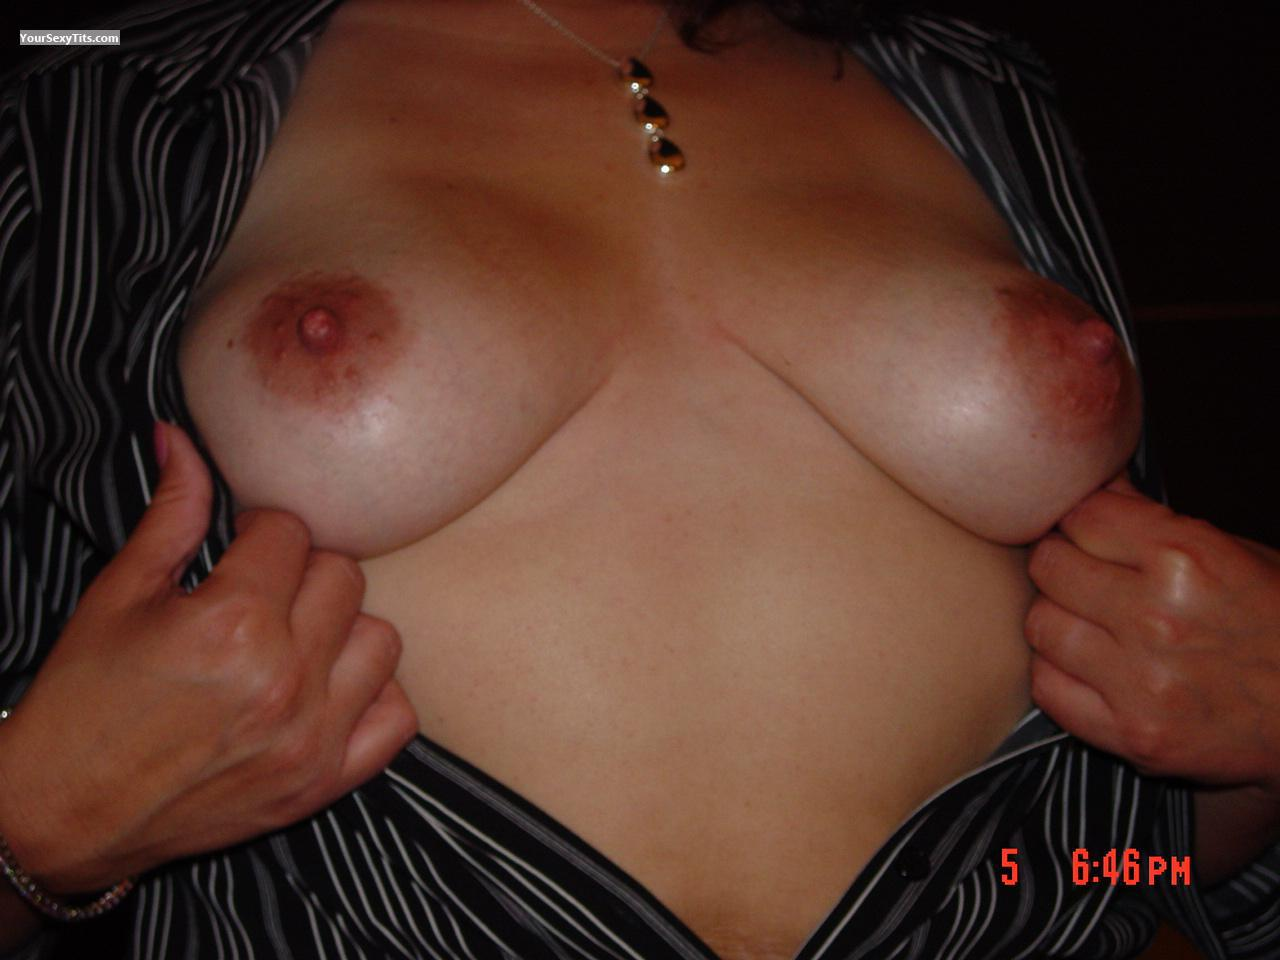 Tit Flash: Medium Tits - Joey6277 from United States